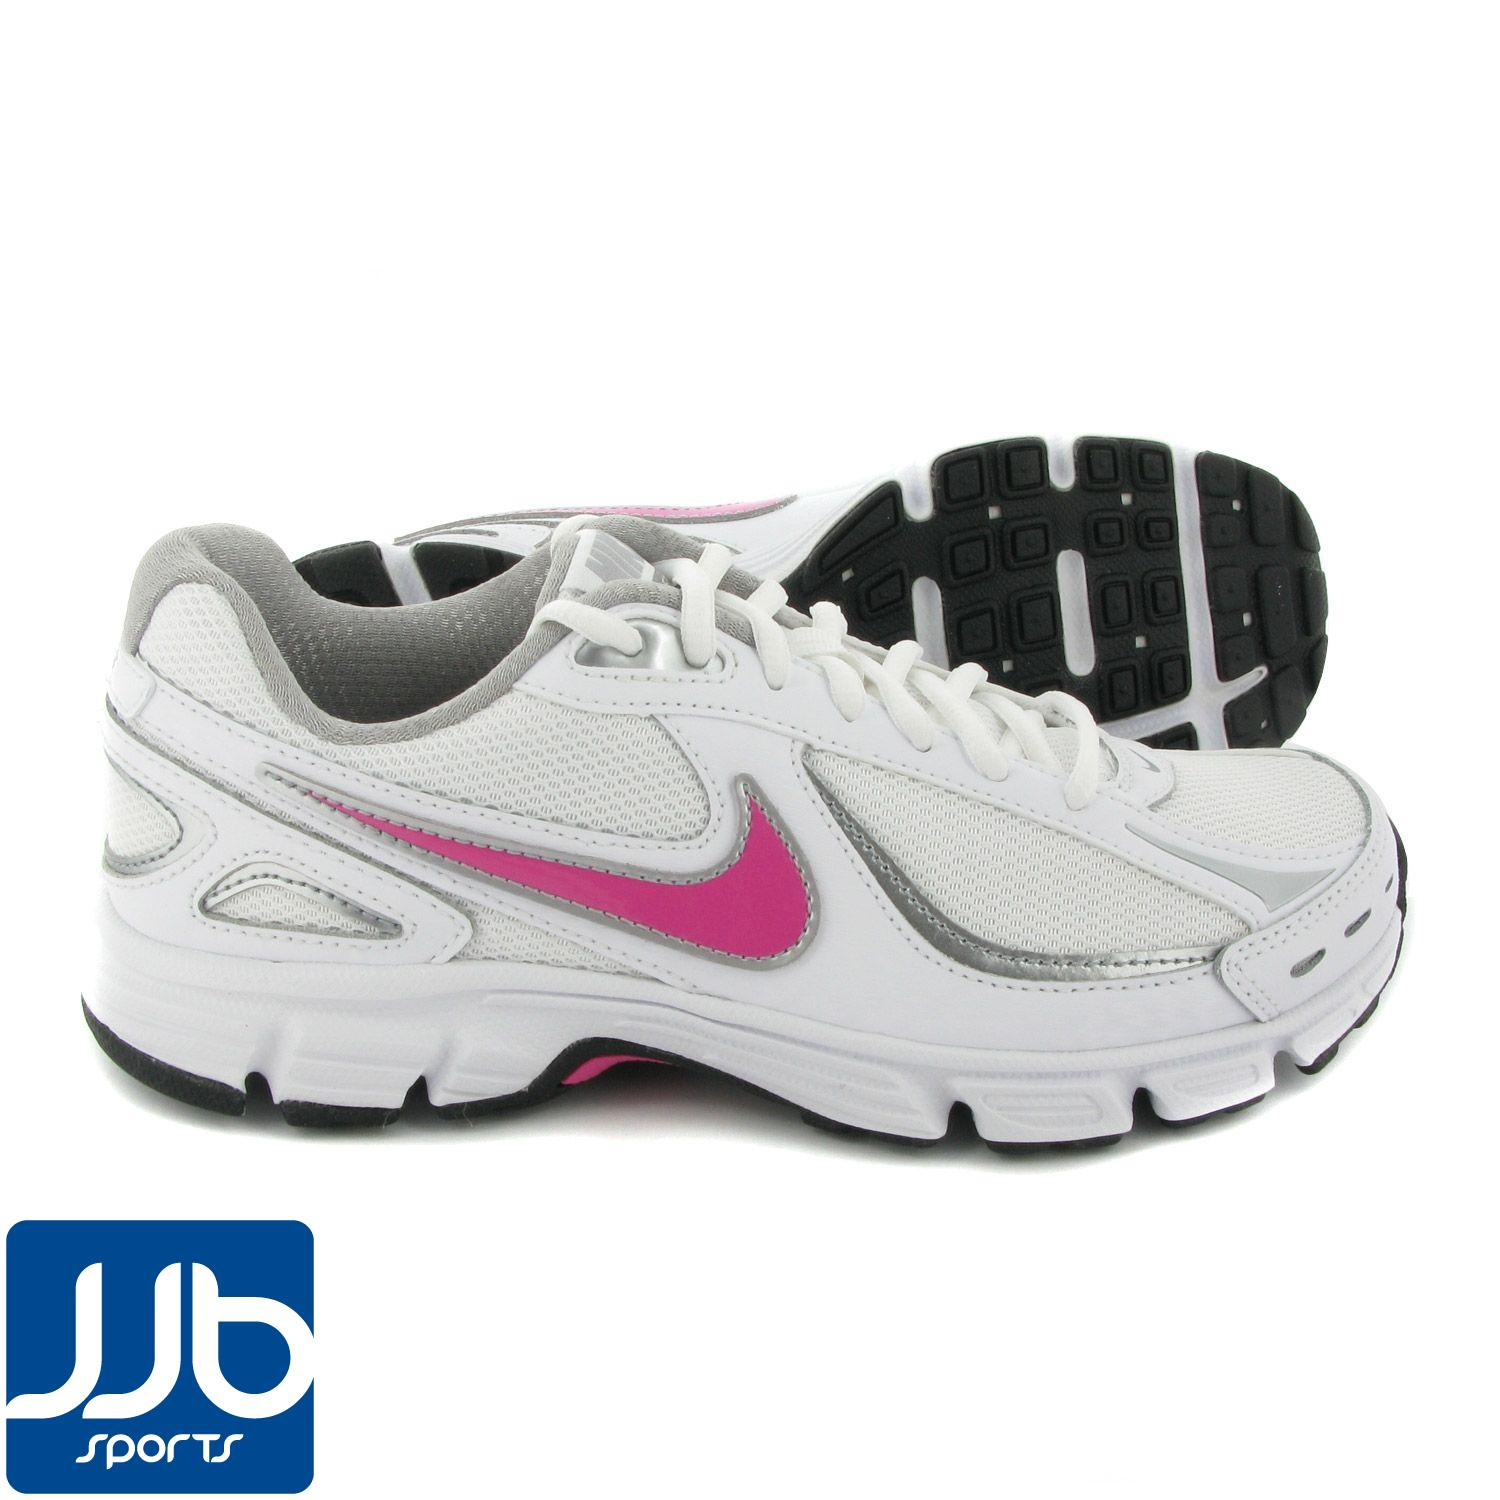 Clothes, Shoes & Accessories > Women s Shoes > Trainers